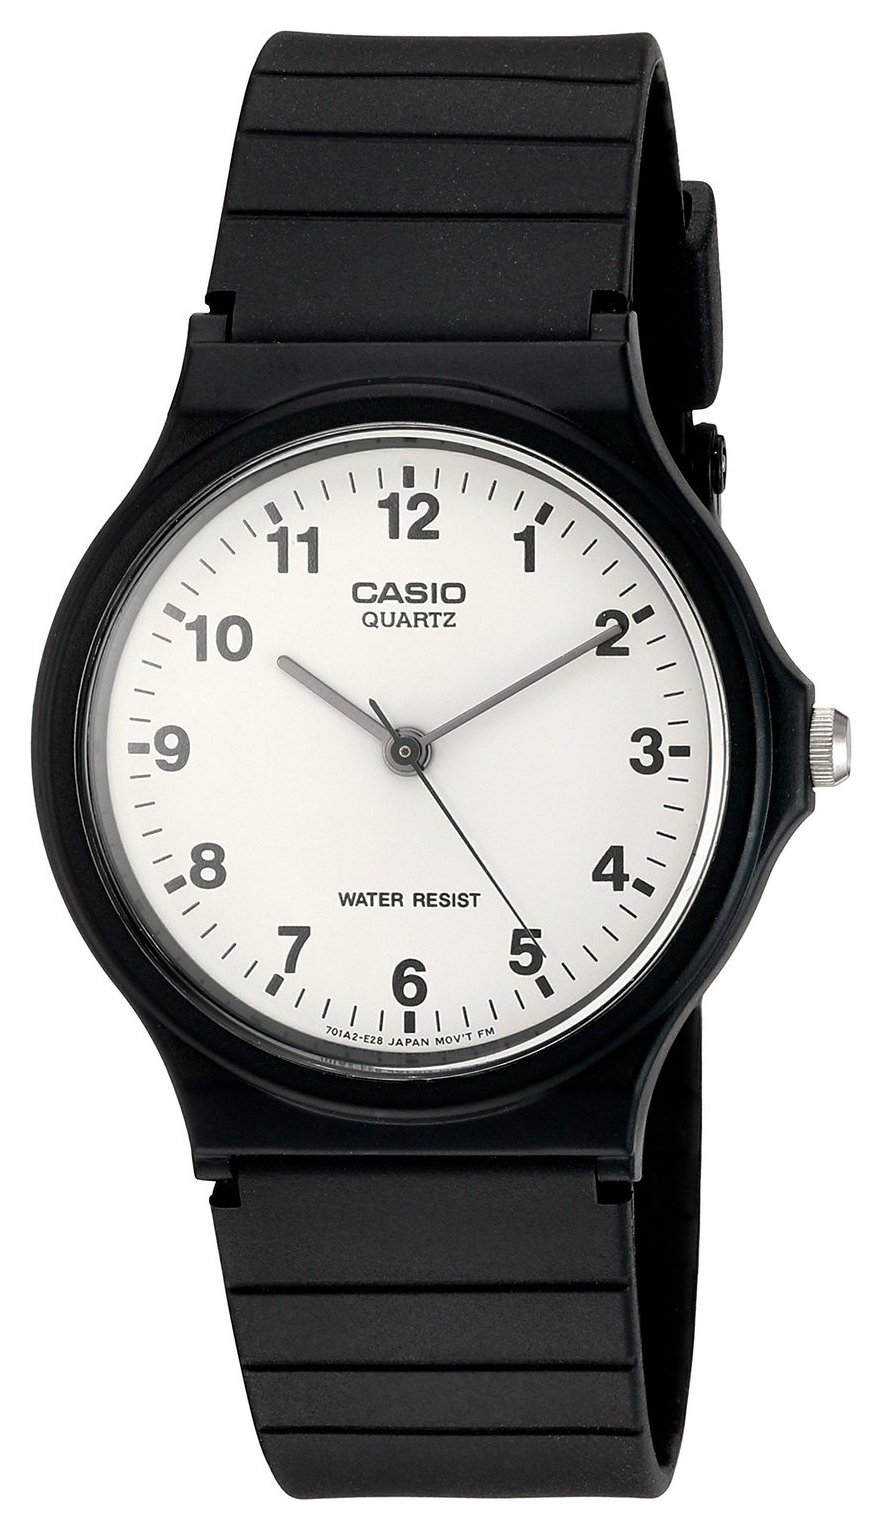 Casio Unisex Black Resin Strap Watch